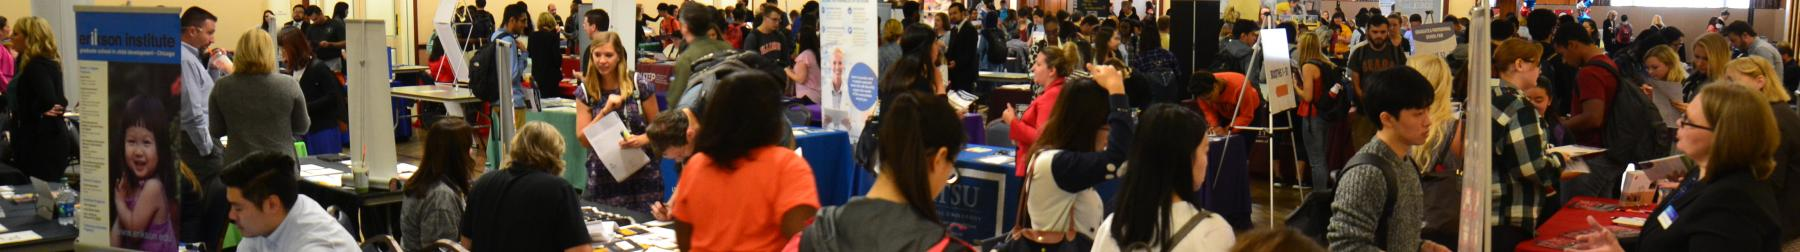 Students visit graduate and professional school booths during the graduate and professional school fair in the Illini Union.